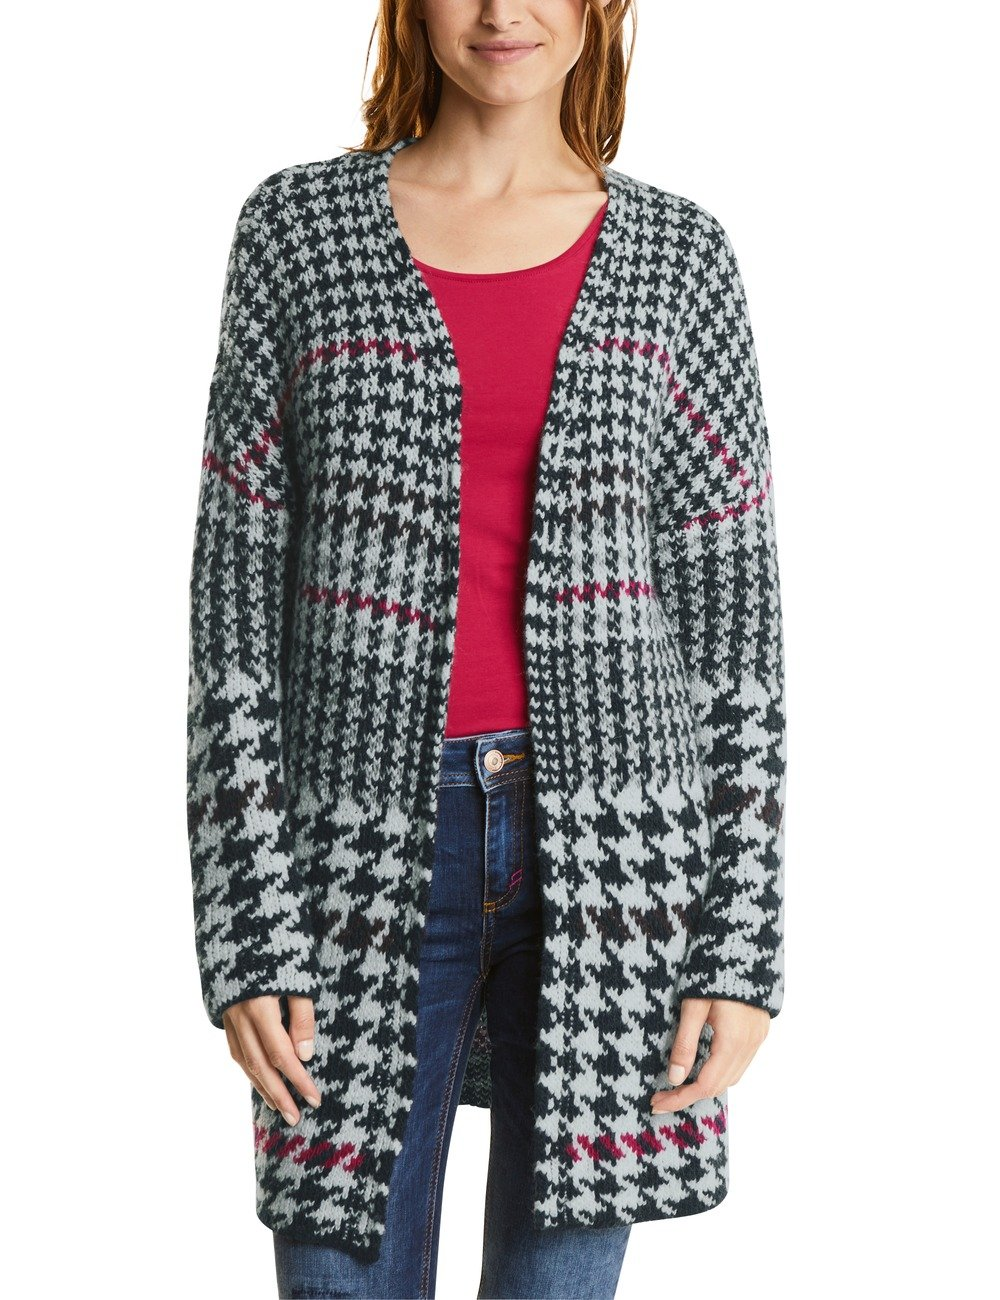 Houndstooth One With Du Street Cardigan Dessin 3010938taille Fabricant36Femme GiletBlaunight Blue mOv0wNn8